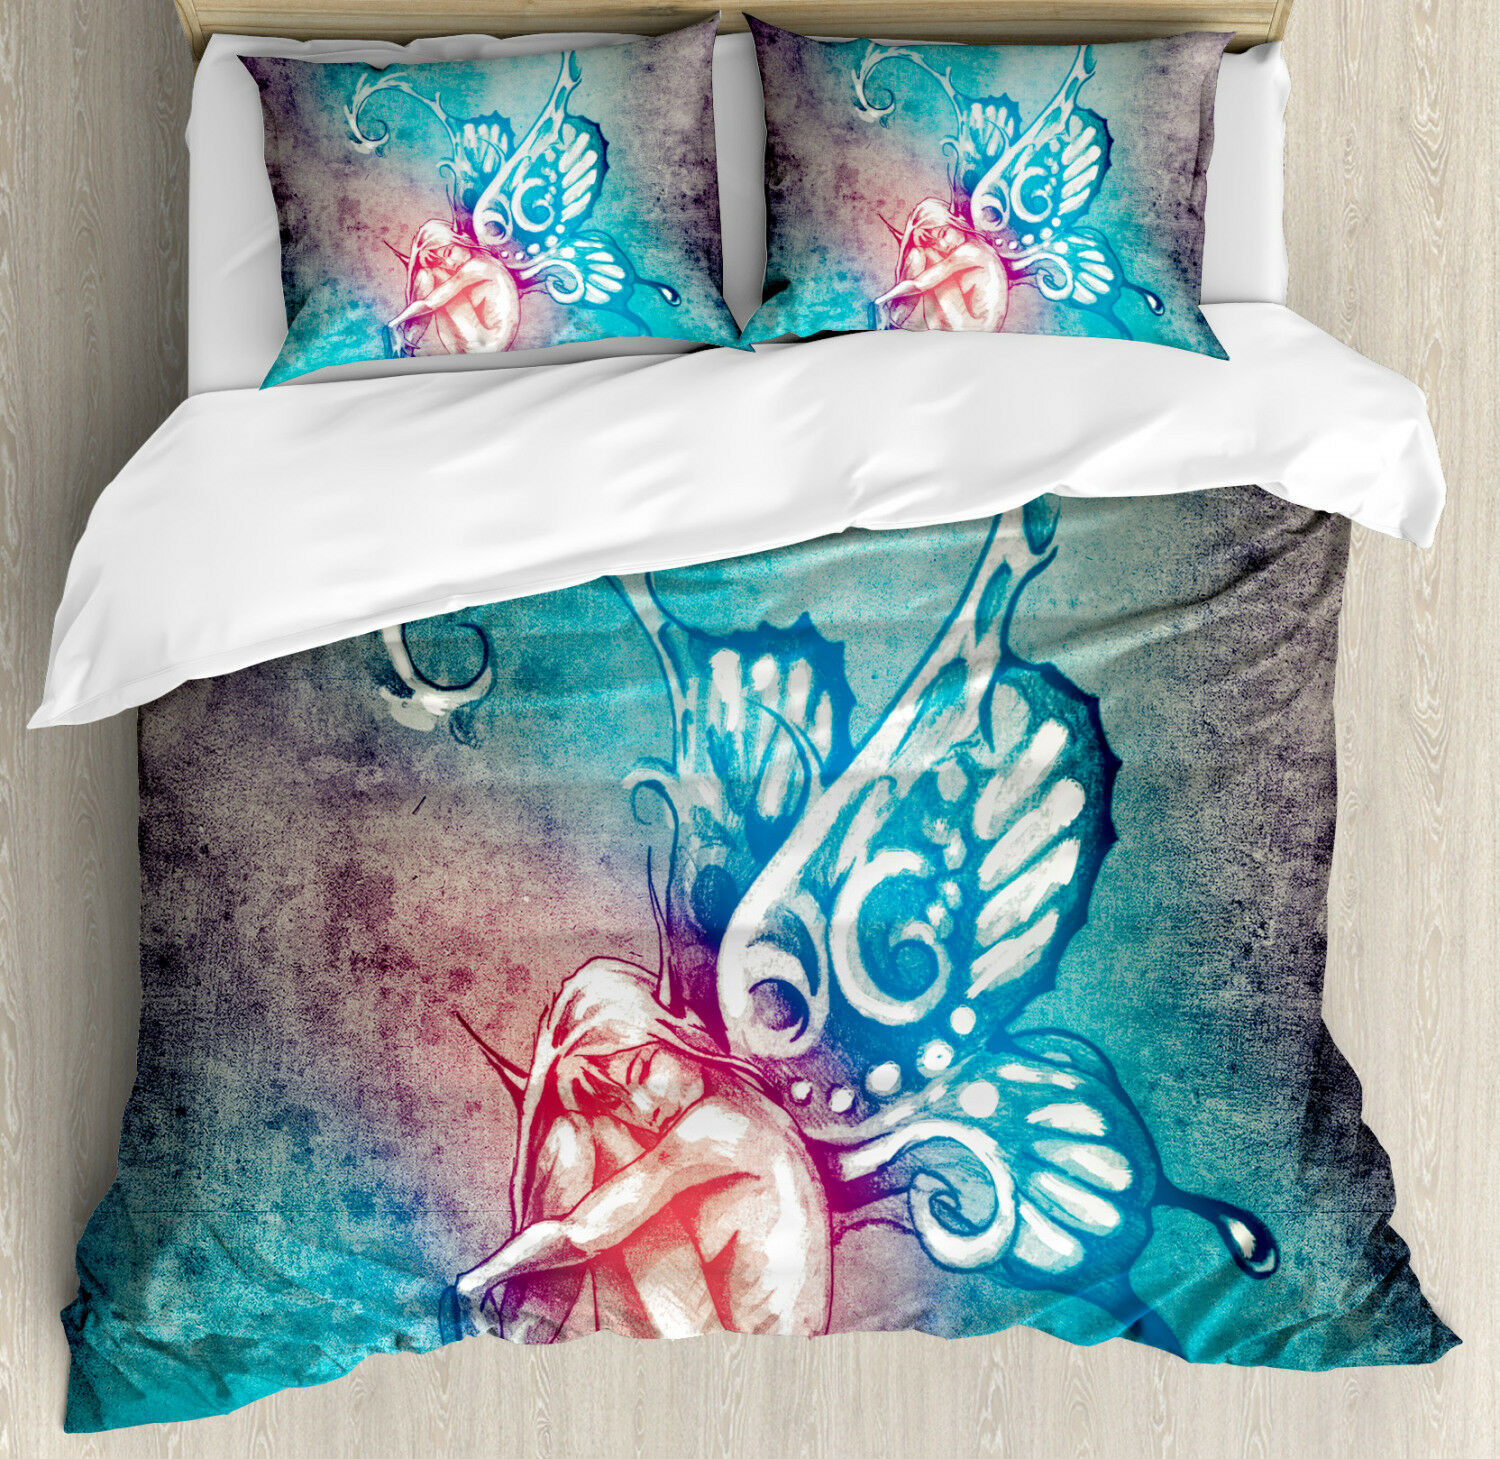 Fantasy Duvet Cover Set with Pillow Shams Butterfly Winged Fairy Print